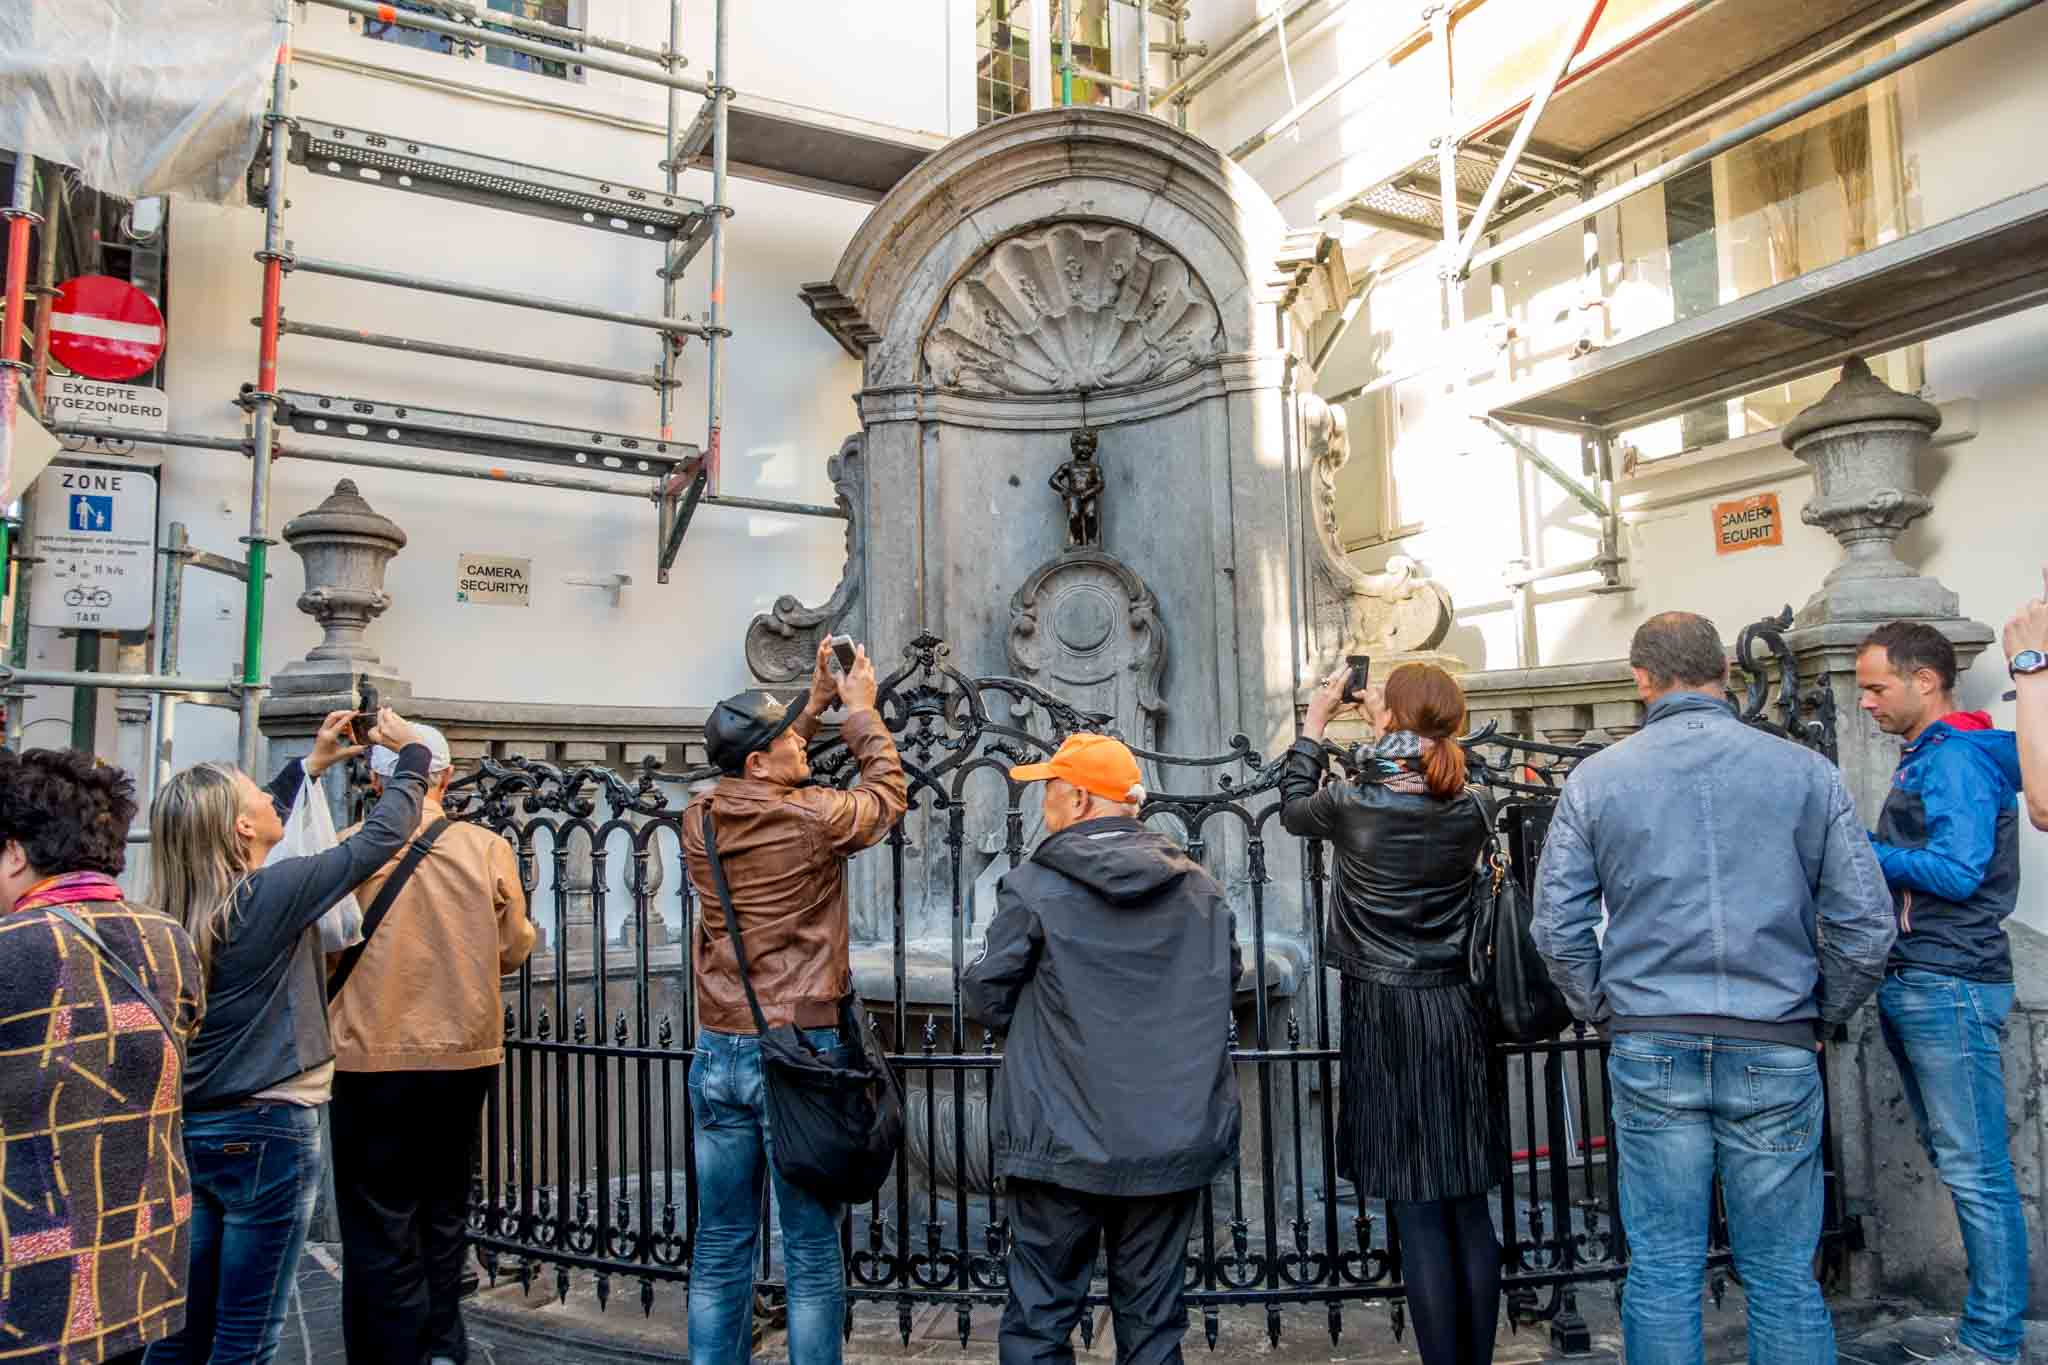 Tourists photographing Manneken Pis, statue of a little boy peeing